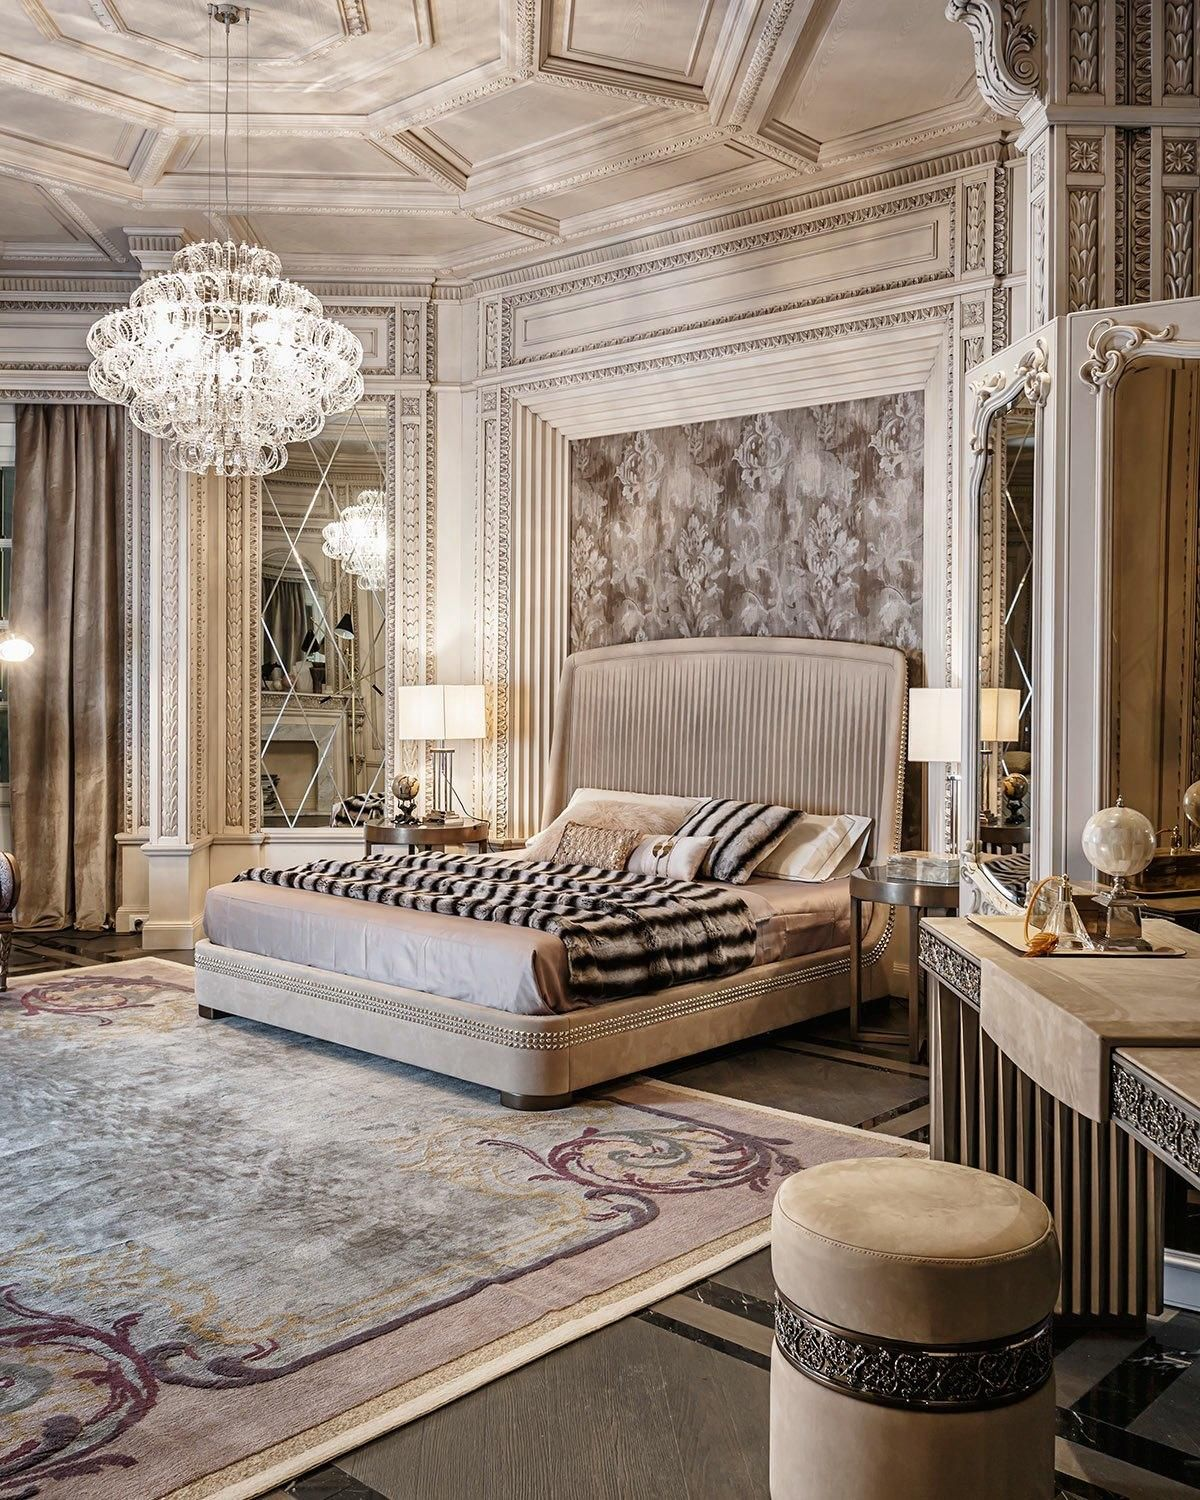 Neoclassical and art deco features in two luxurious for Neoclassical bedroom interior design